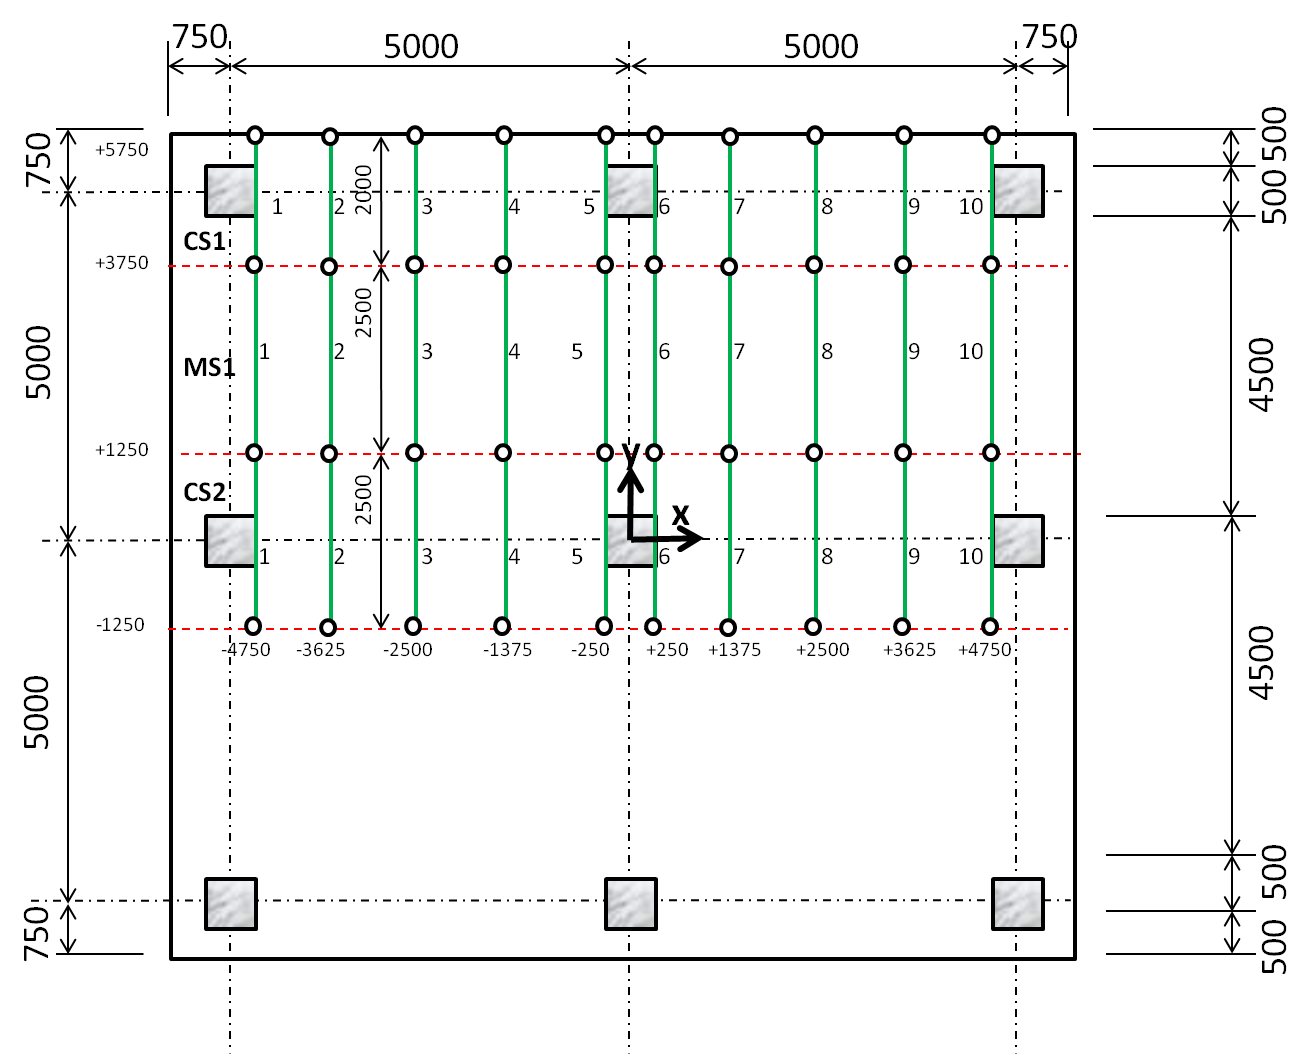 Flat Plate Slab Design Using Section Cut In Sap2000 Structural Bending Moment Diagram Software Figure 1 Example Reinforced With The Cuts Marked For Column Strips And Middle Strip